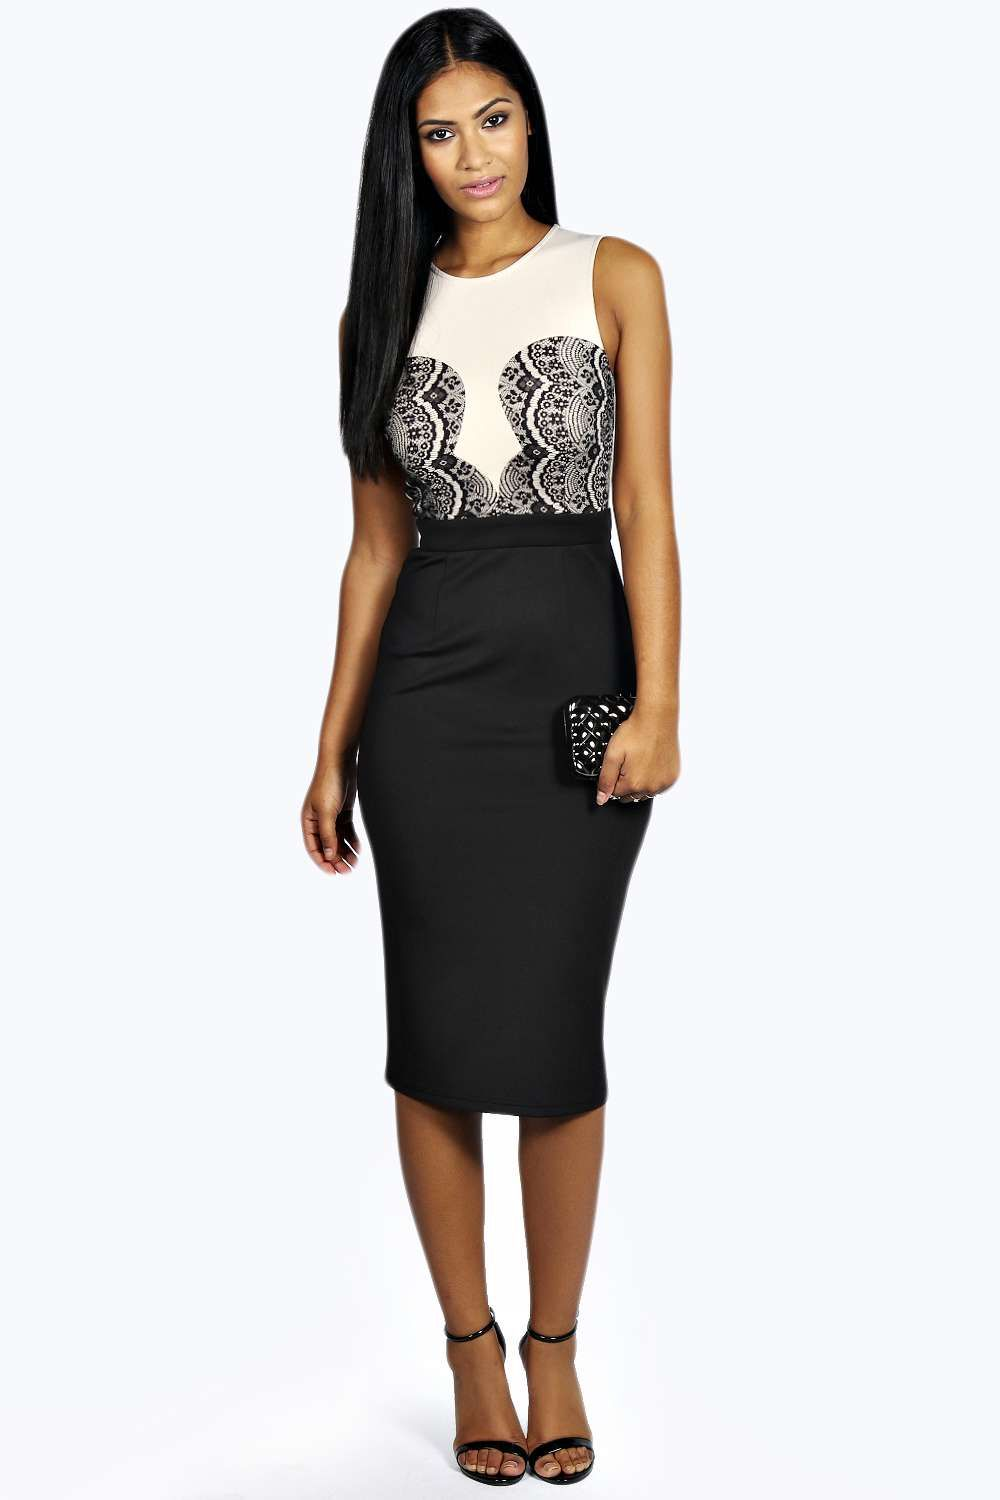 Boutique Anna Lace Top Bodycon Midi Dress | Tops, Lace tops and Lace